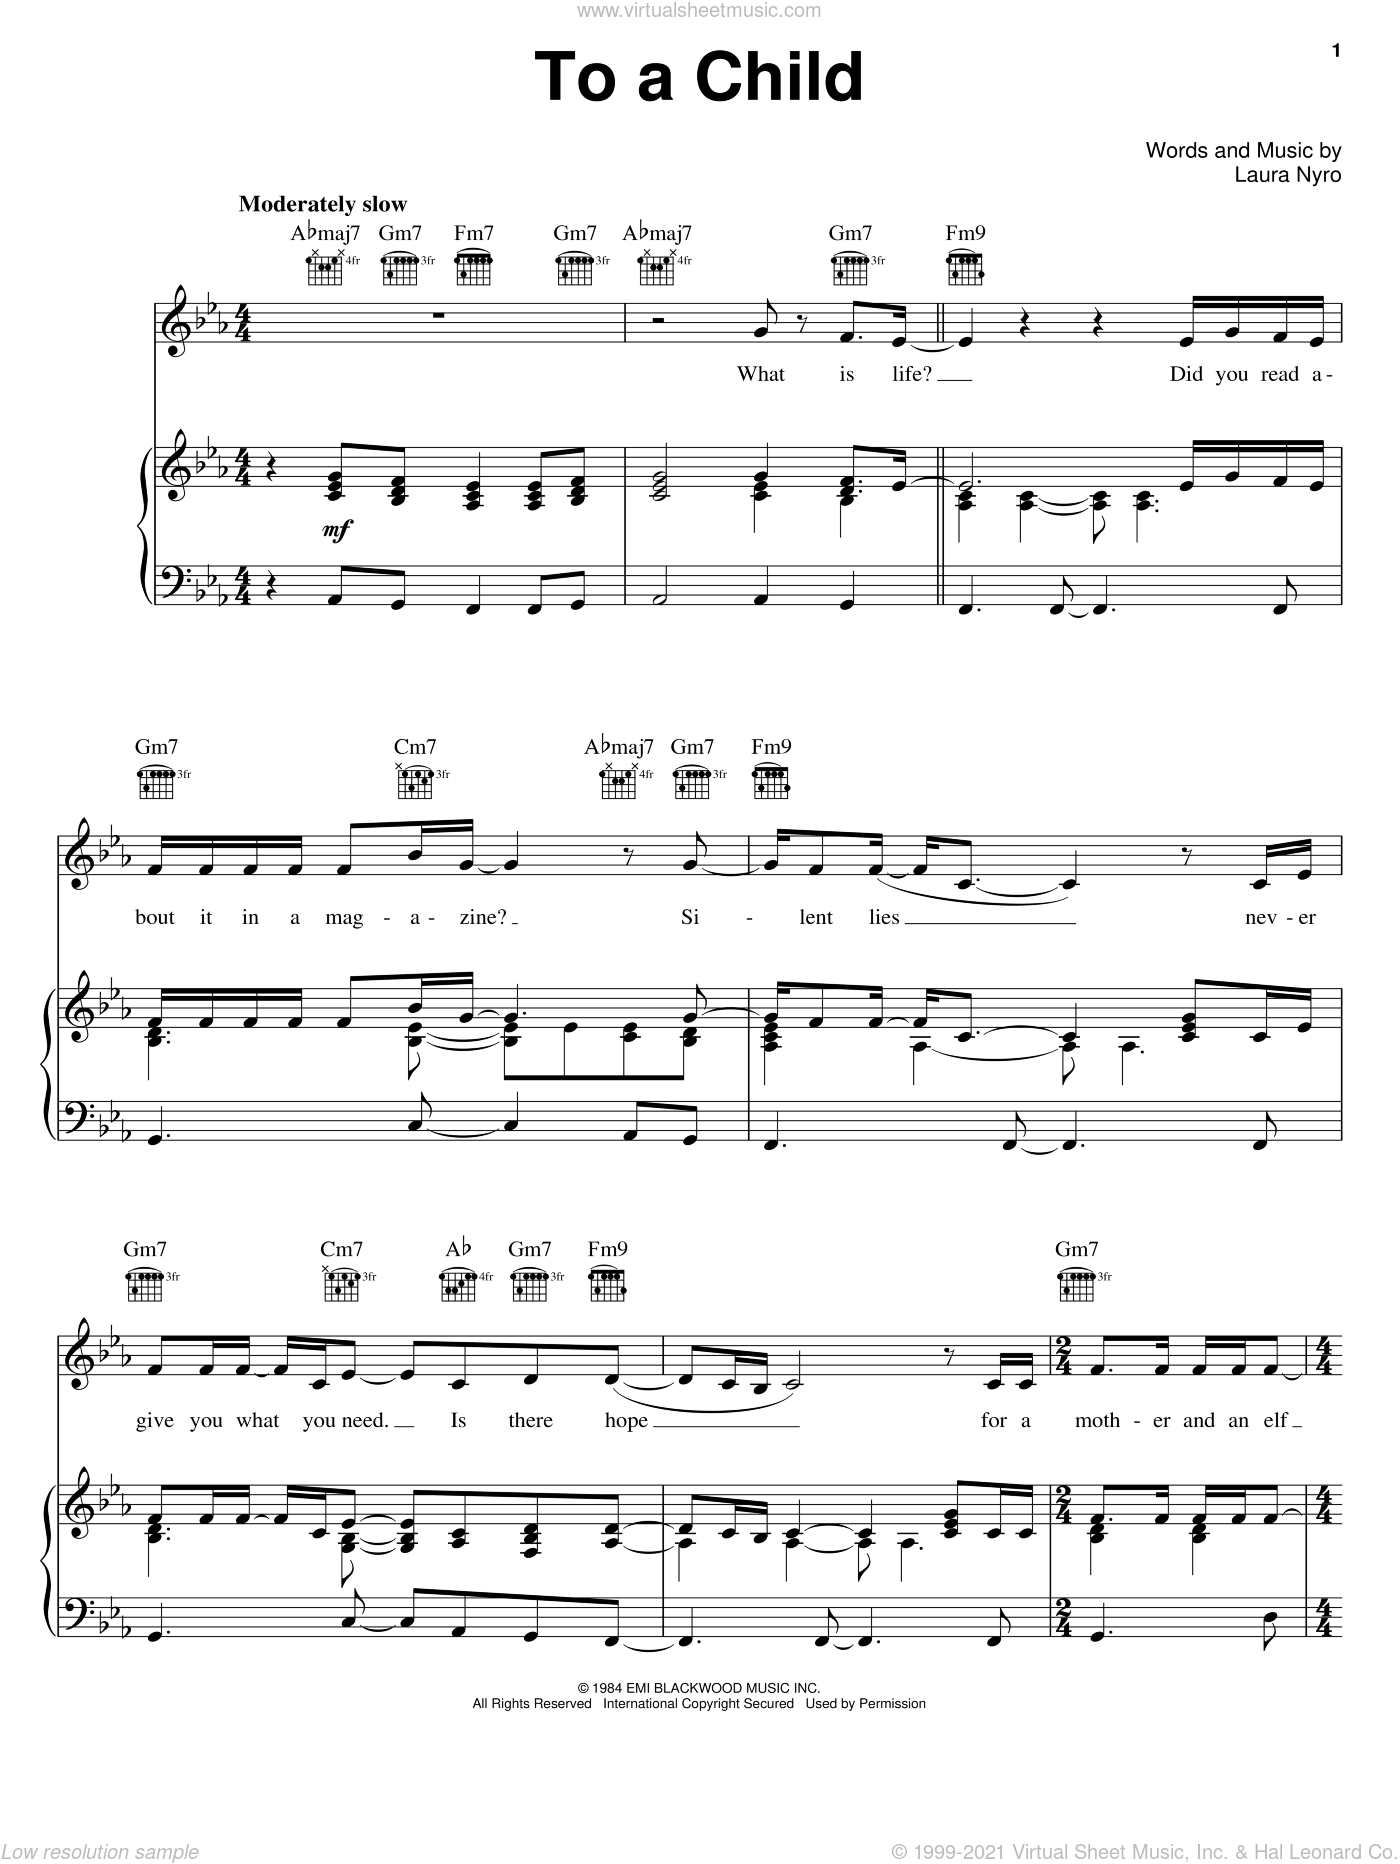 To A Child sheet music for voice, piano or guitar by Laura Nyro. Score Image Preview.